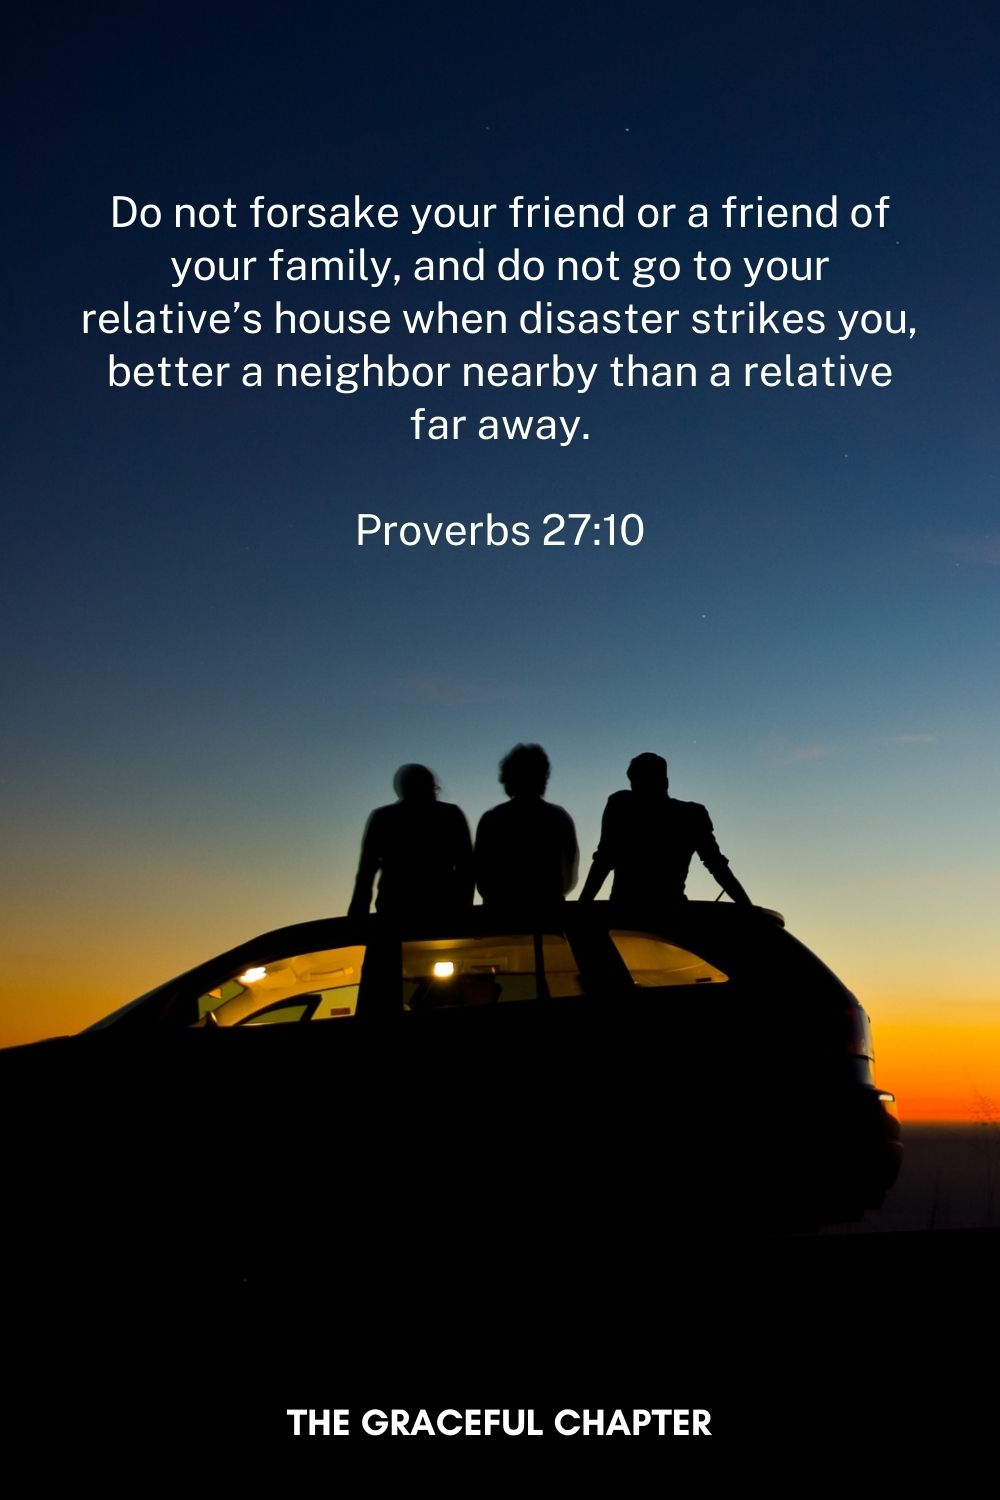 Do not forsake your friend or a friend of your family, and do not go to your relative's house when disaster strikes you— better a neighbor nearby than a relative far away. Proverbs 27:10